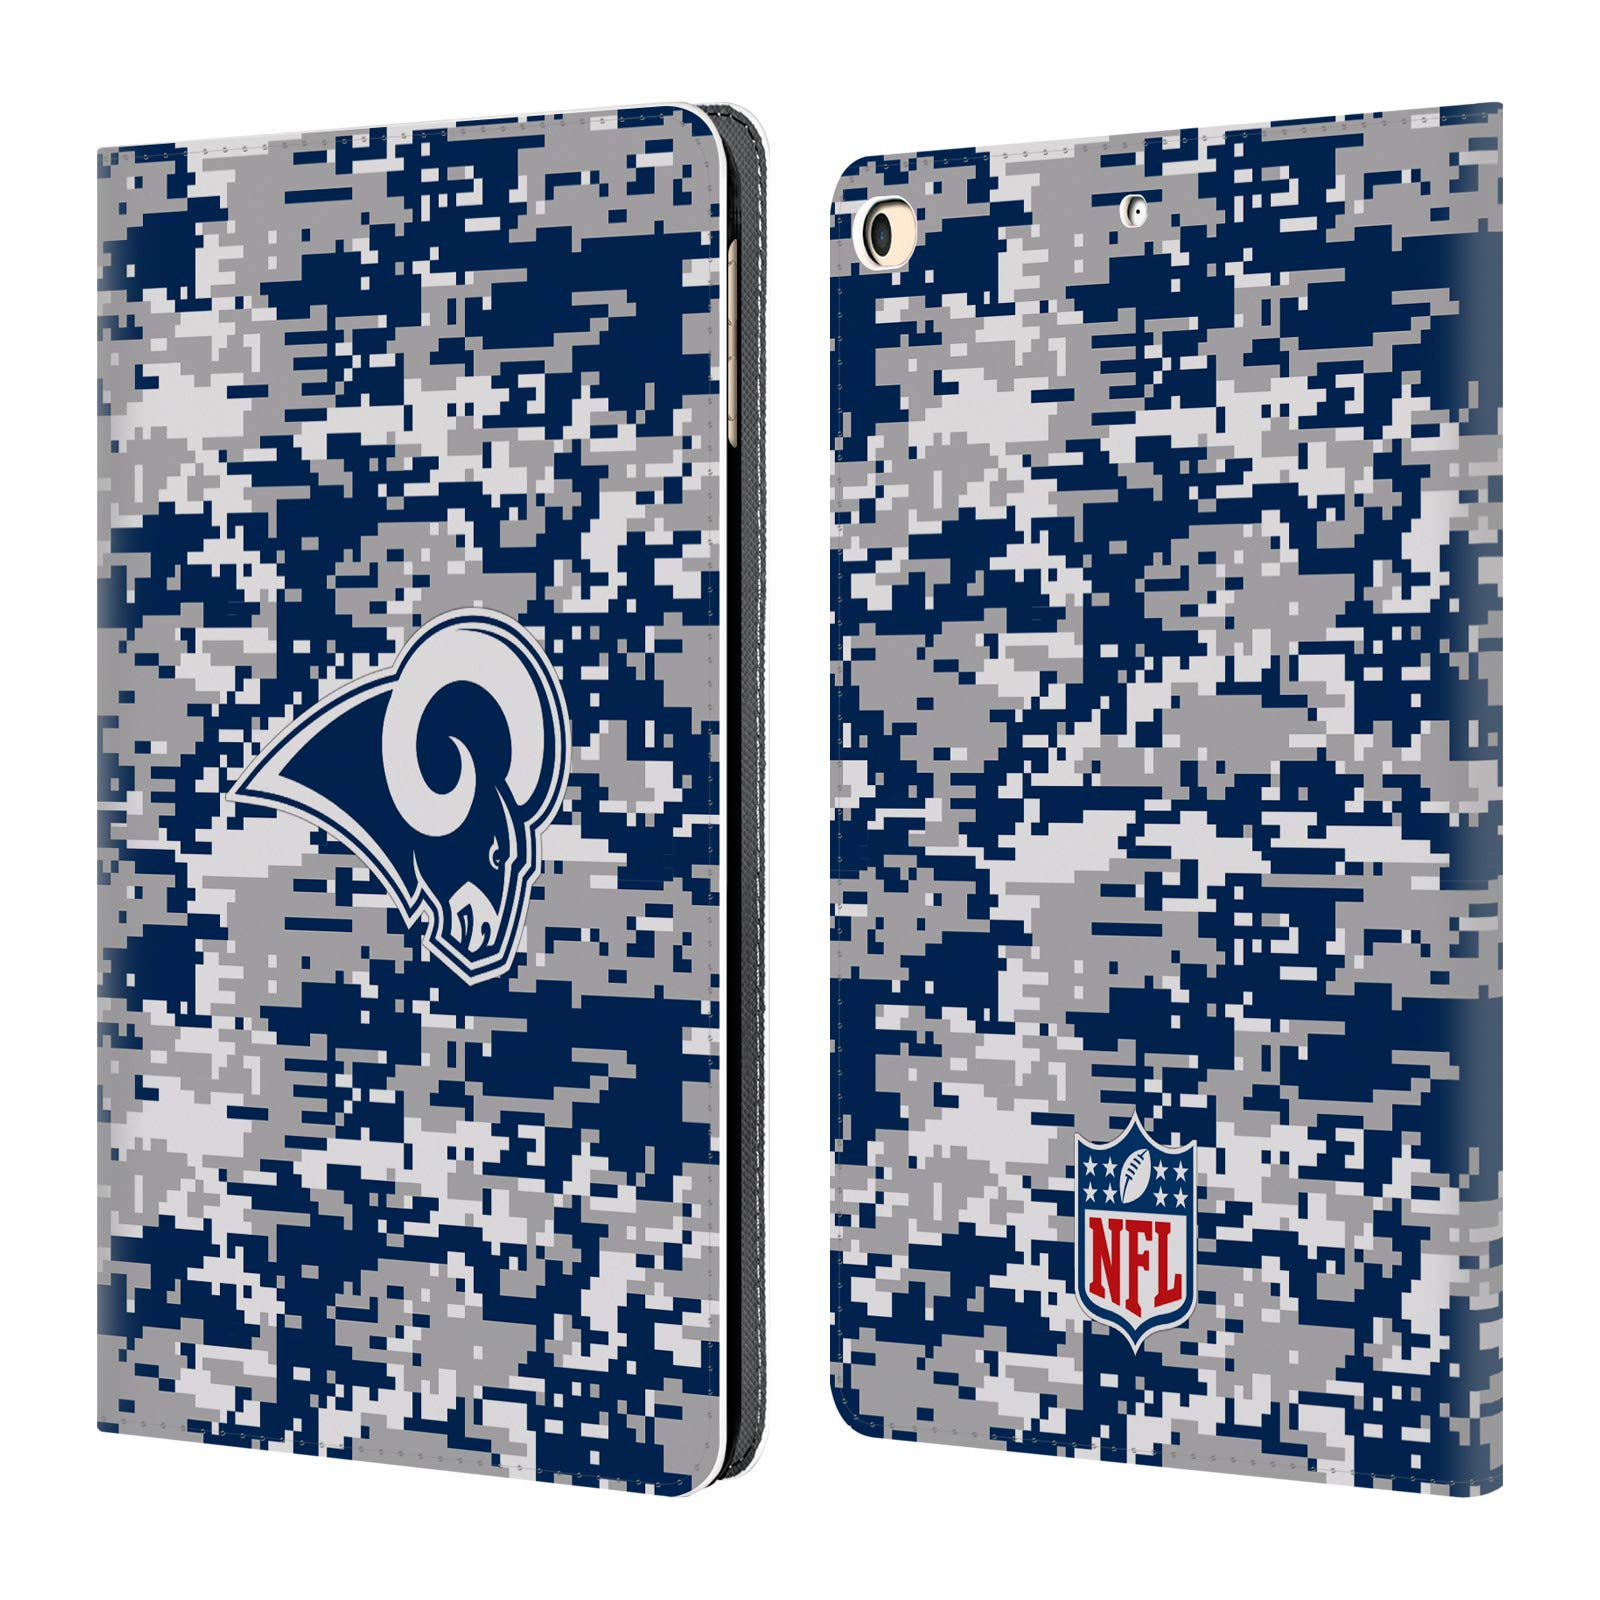 Official NFL Digital Camouflage 2018/19 Los Angeles Rams Leather Book Wallet Case Cover for iPad 9.7 2017 / iPad 9.7 2018